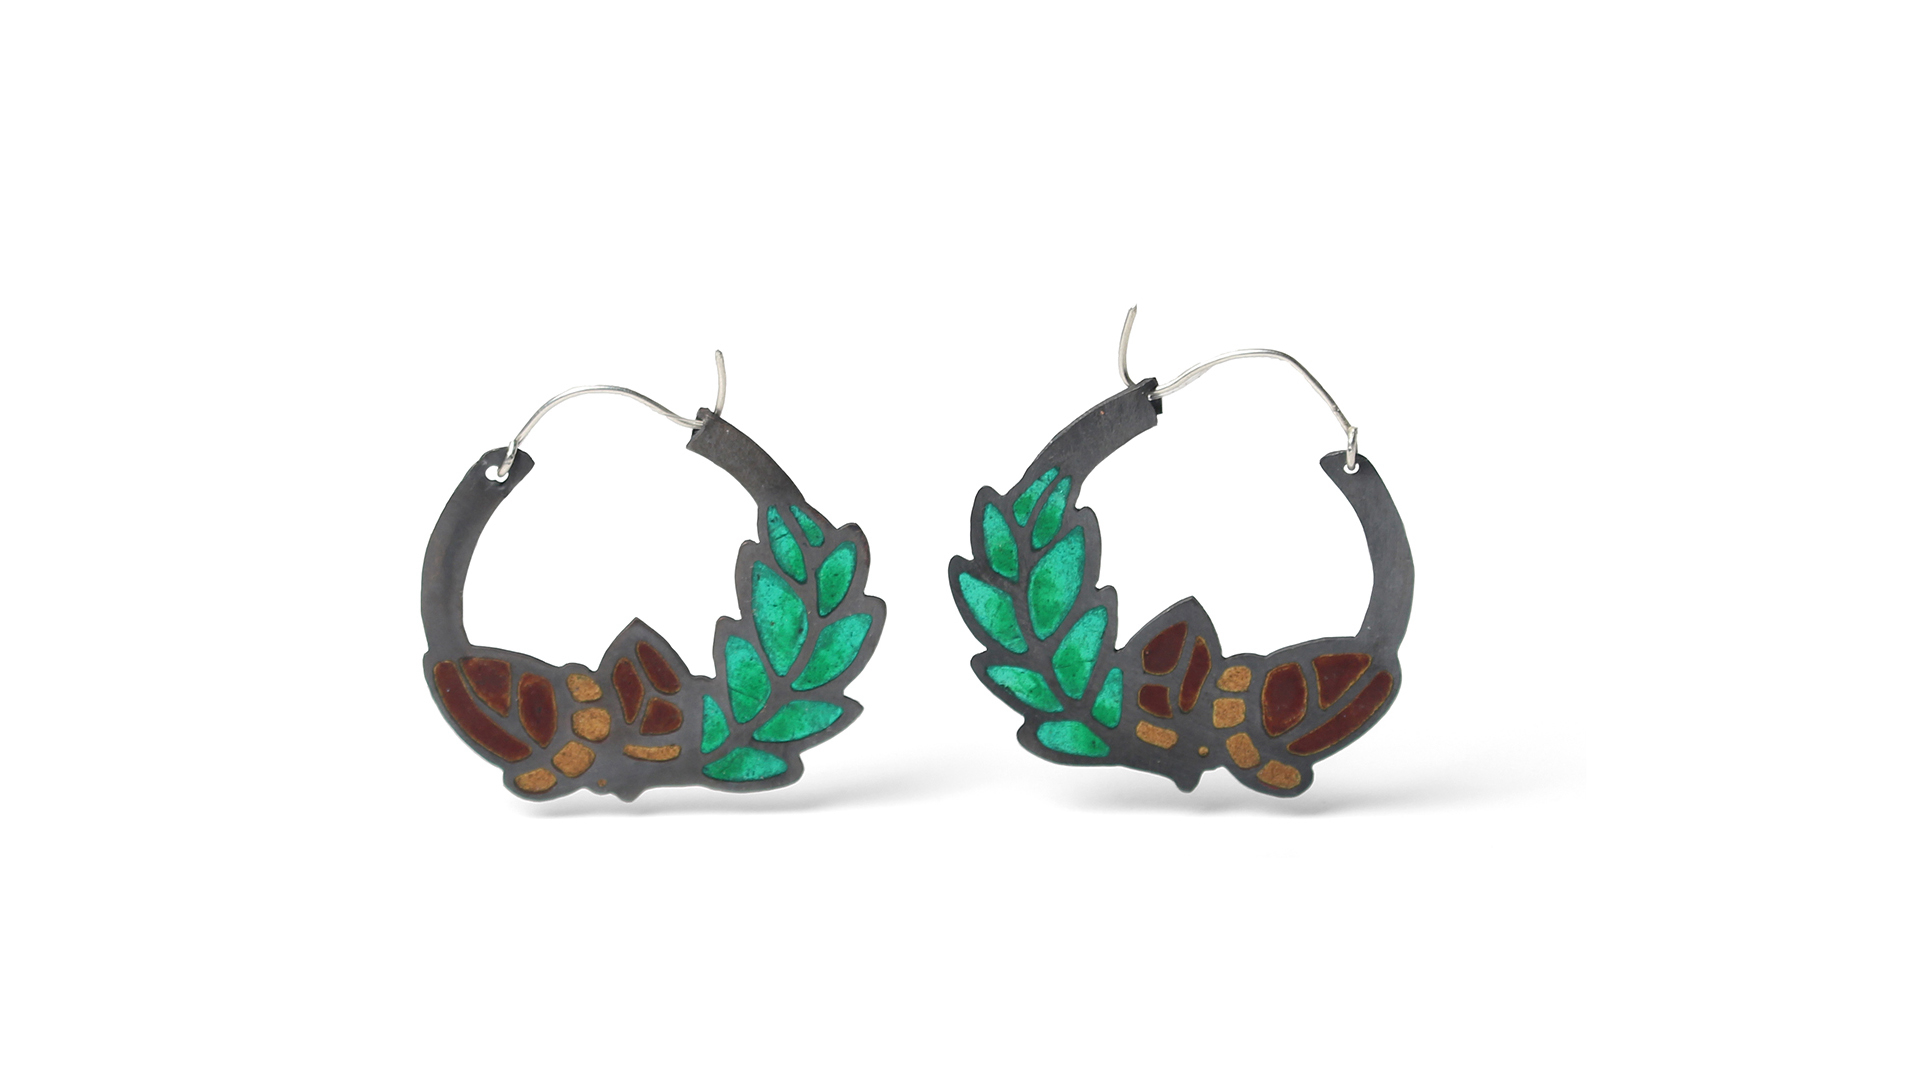 Zoe Glos, Acorn Earrings